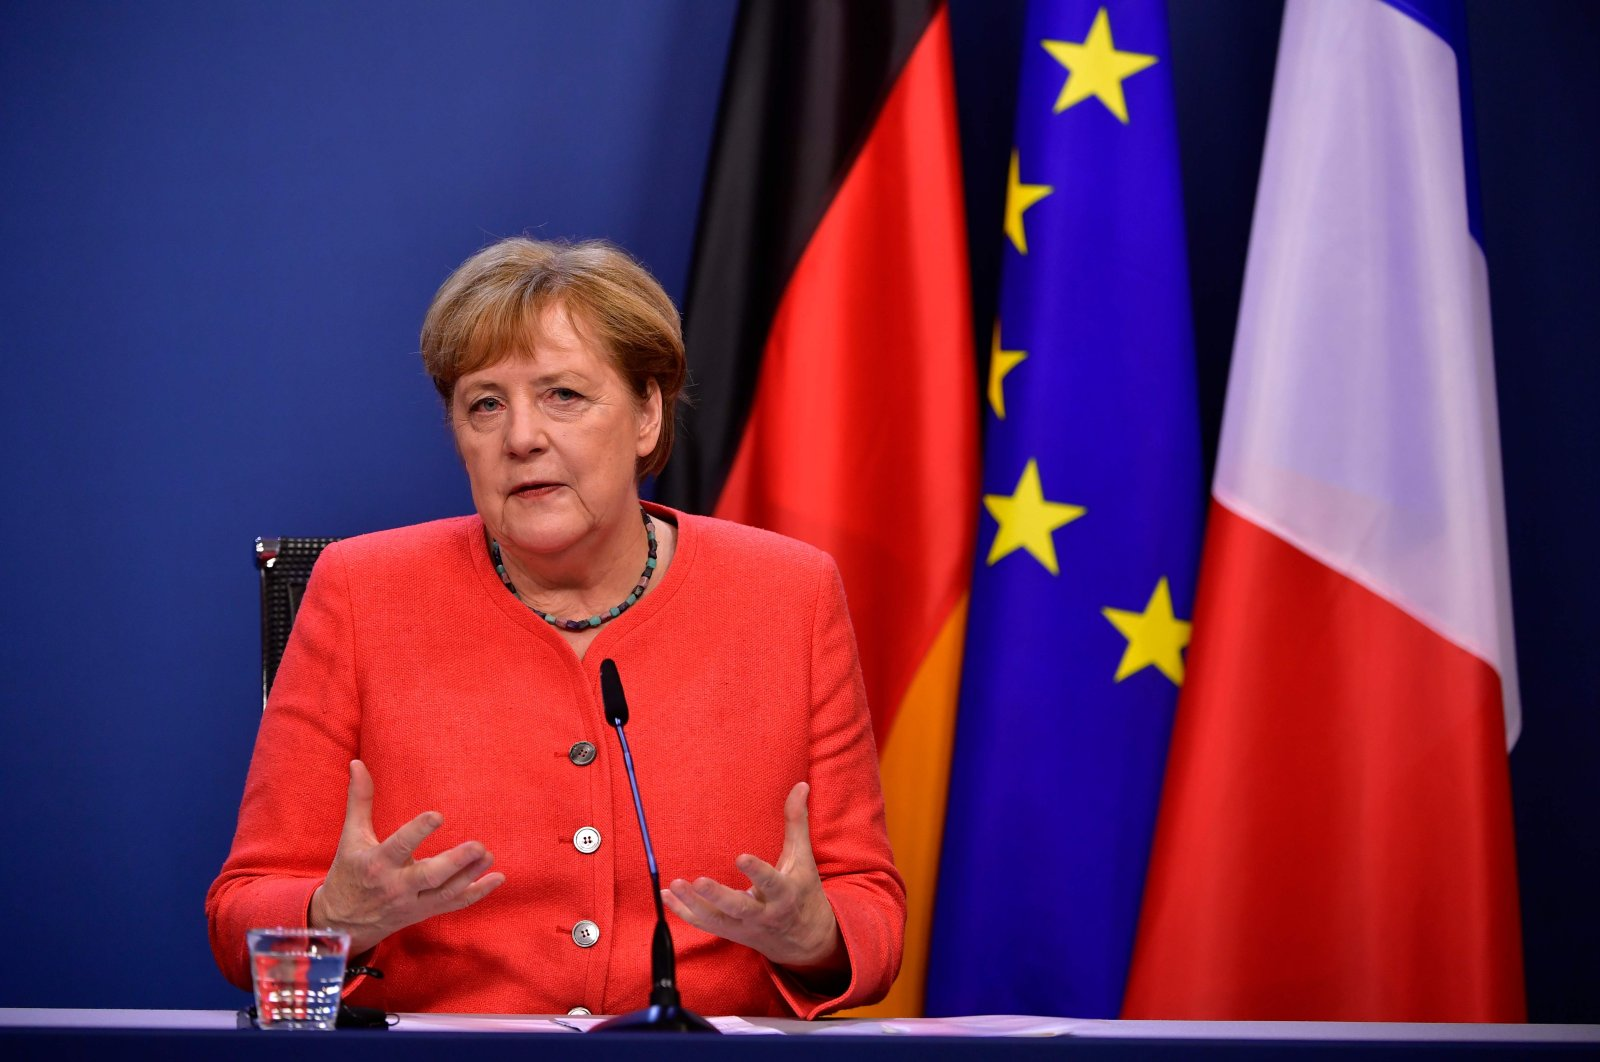 German Chancellor Angela Merkel speaks at the end of the European summit at the EU headquarters, Brussels, July 21, 2020. (AFP Photo)